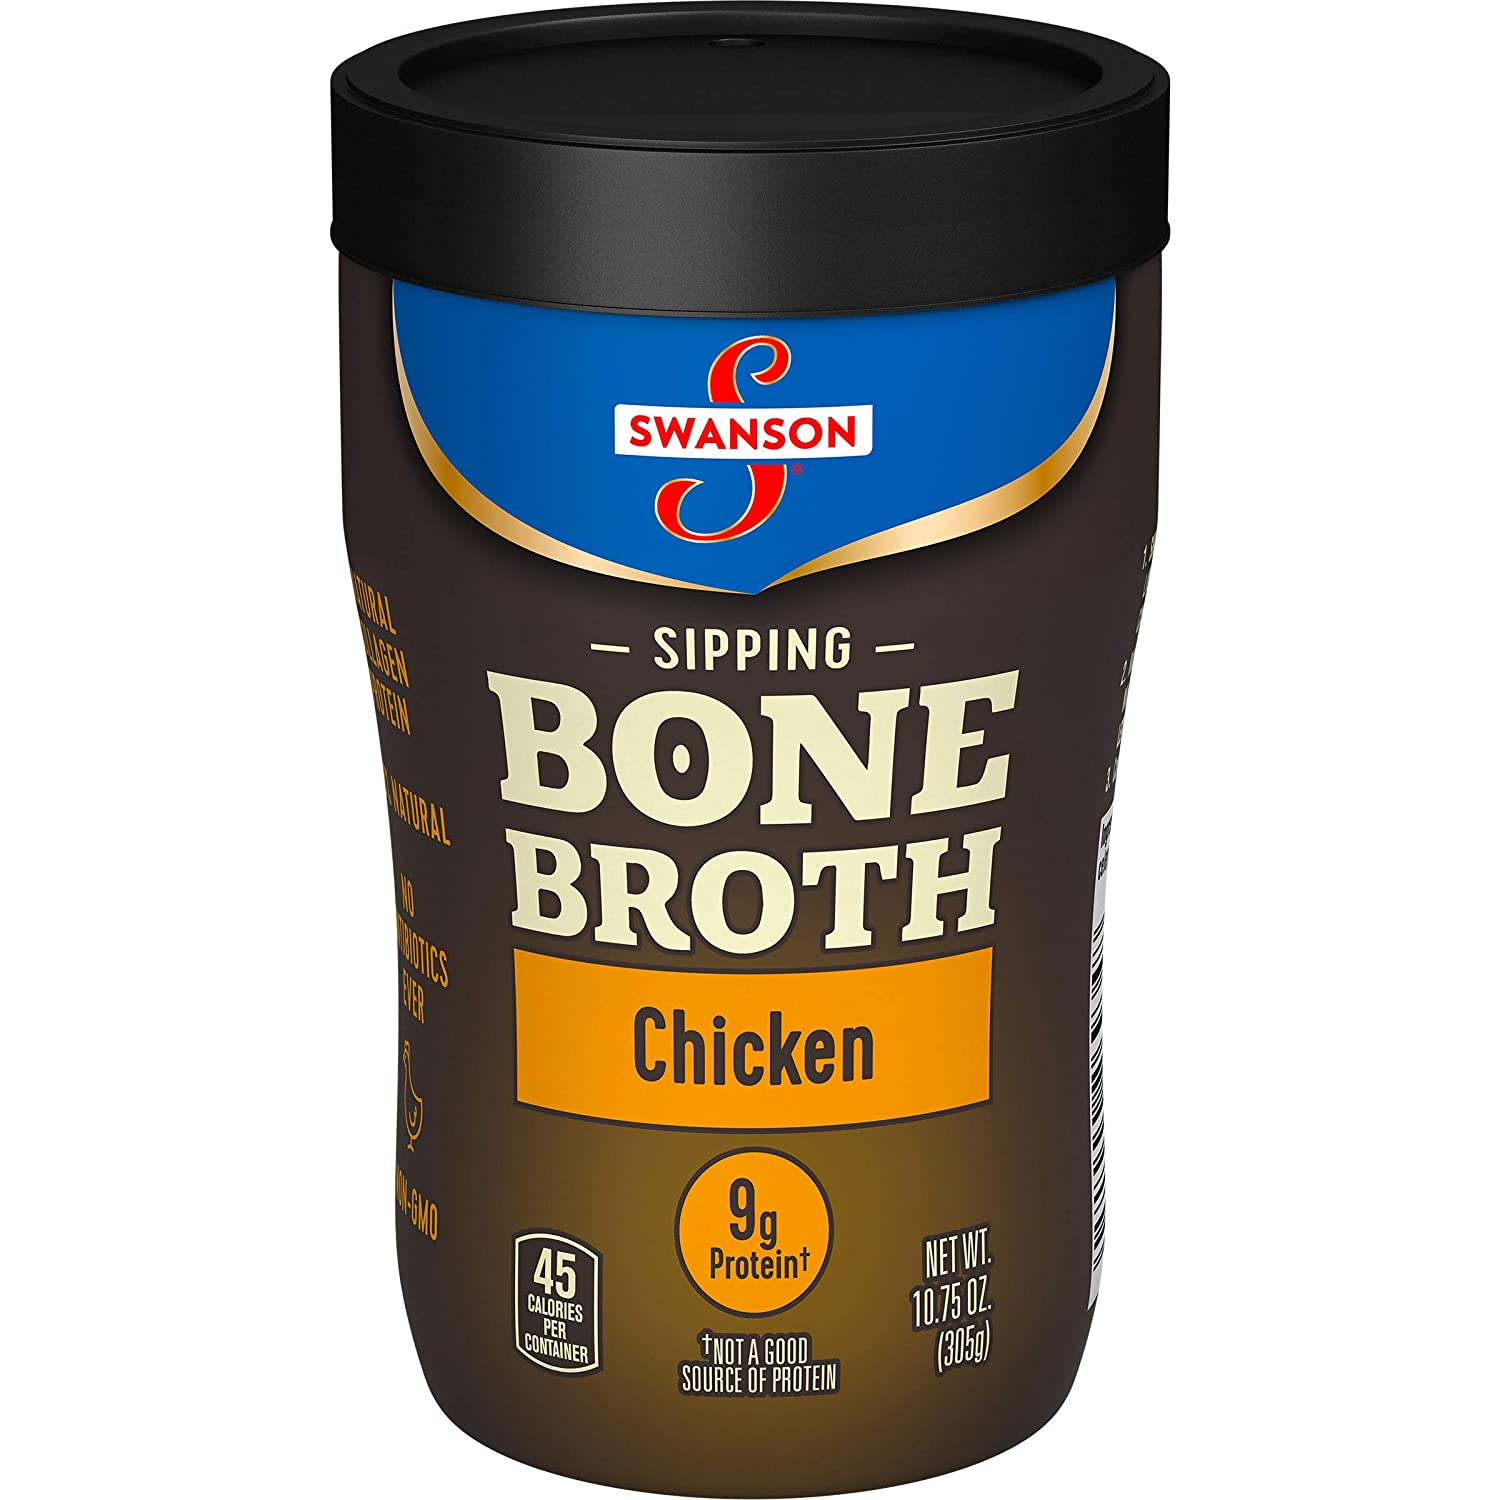 Amazon.com : Swanson Sipping Bone Broth, Chicken Bone Broth, 10.75 Ounce Sipping Cup : Grocery & Gourmet Food